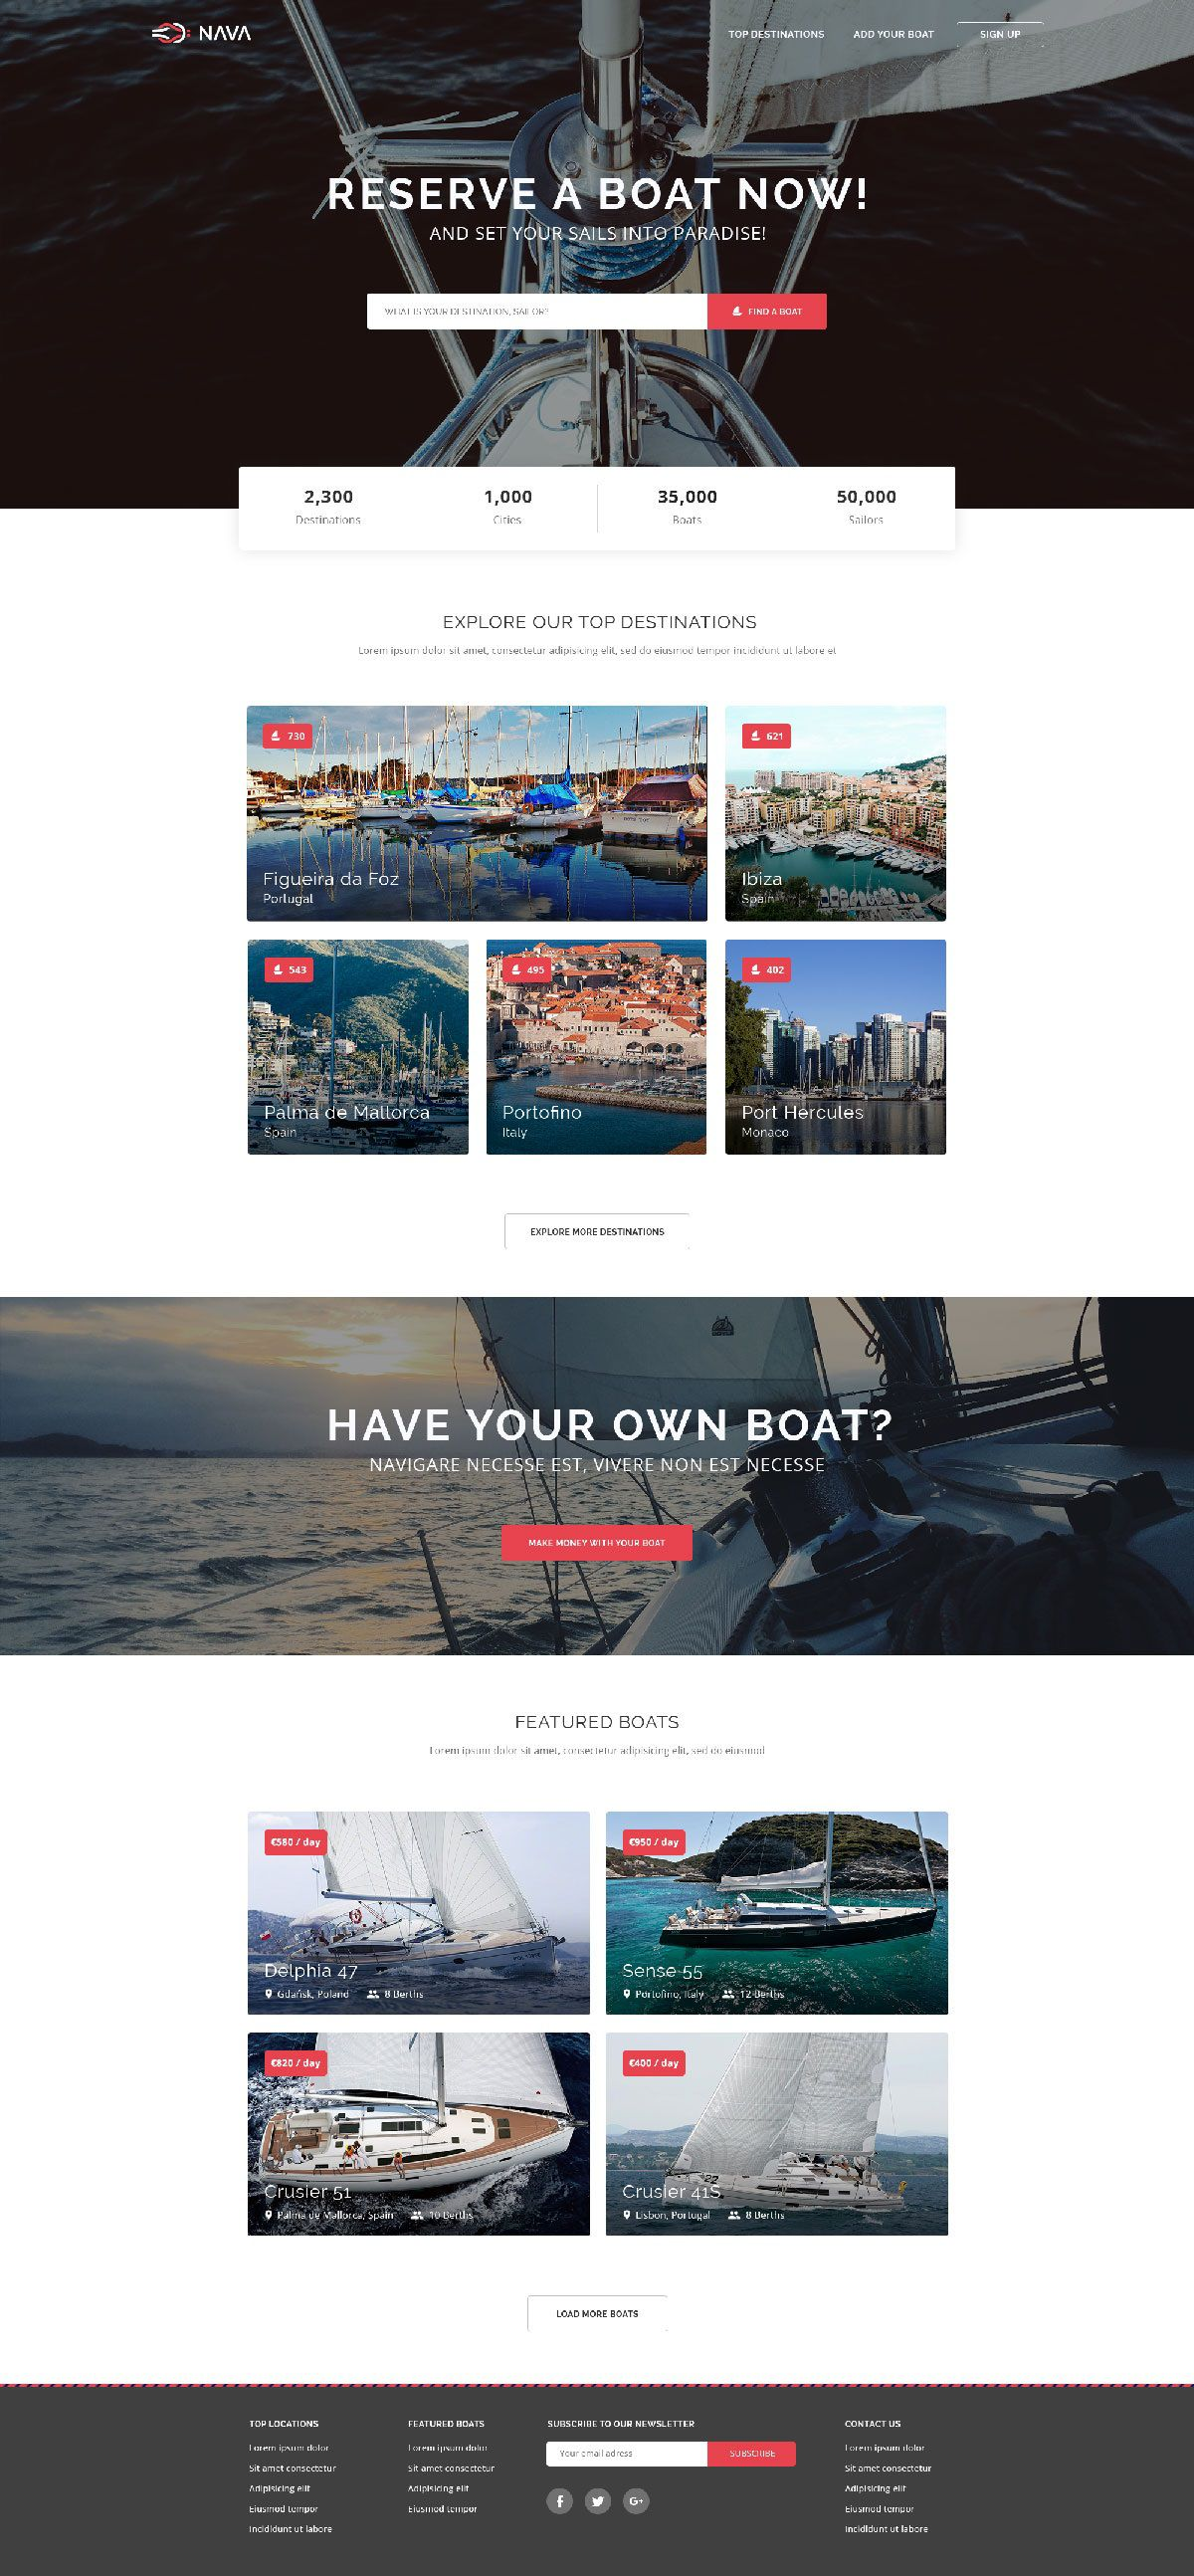 006 Remarkable One Page Website Template Psd Free Download Idea Full